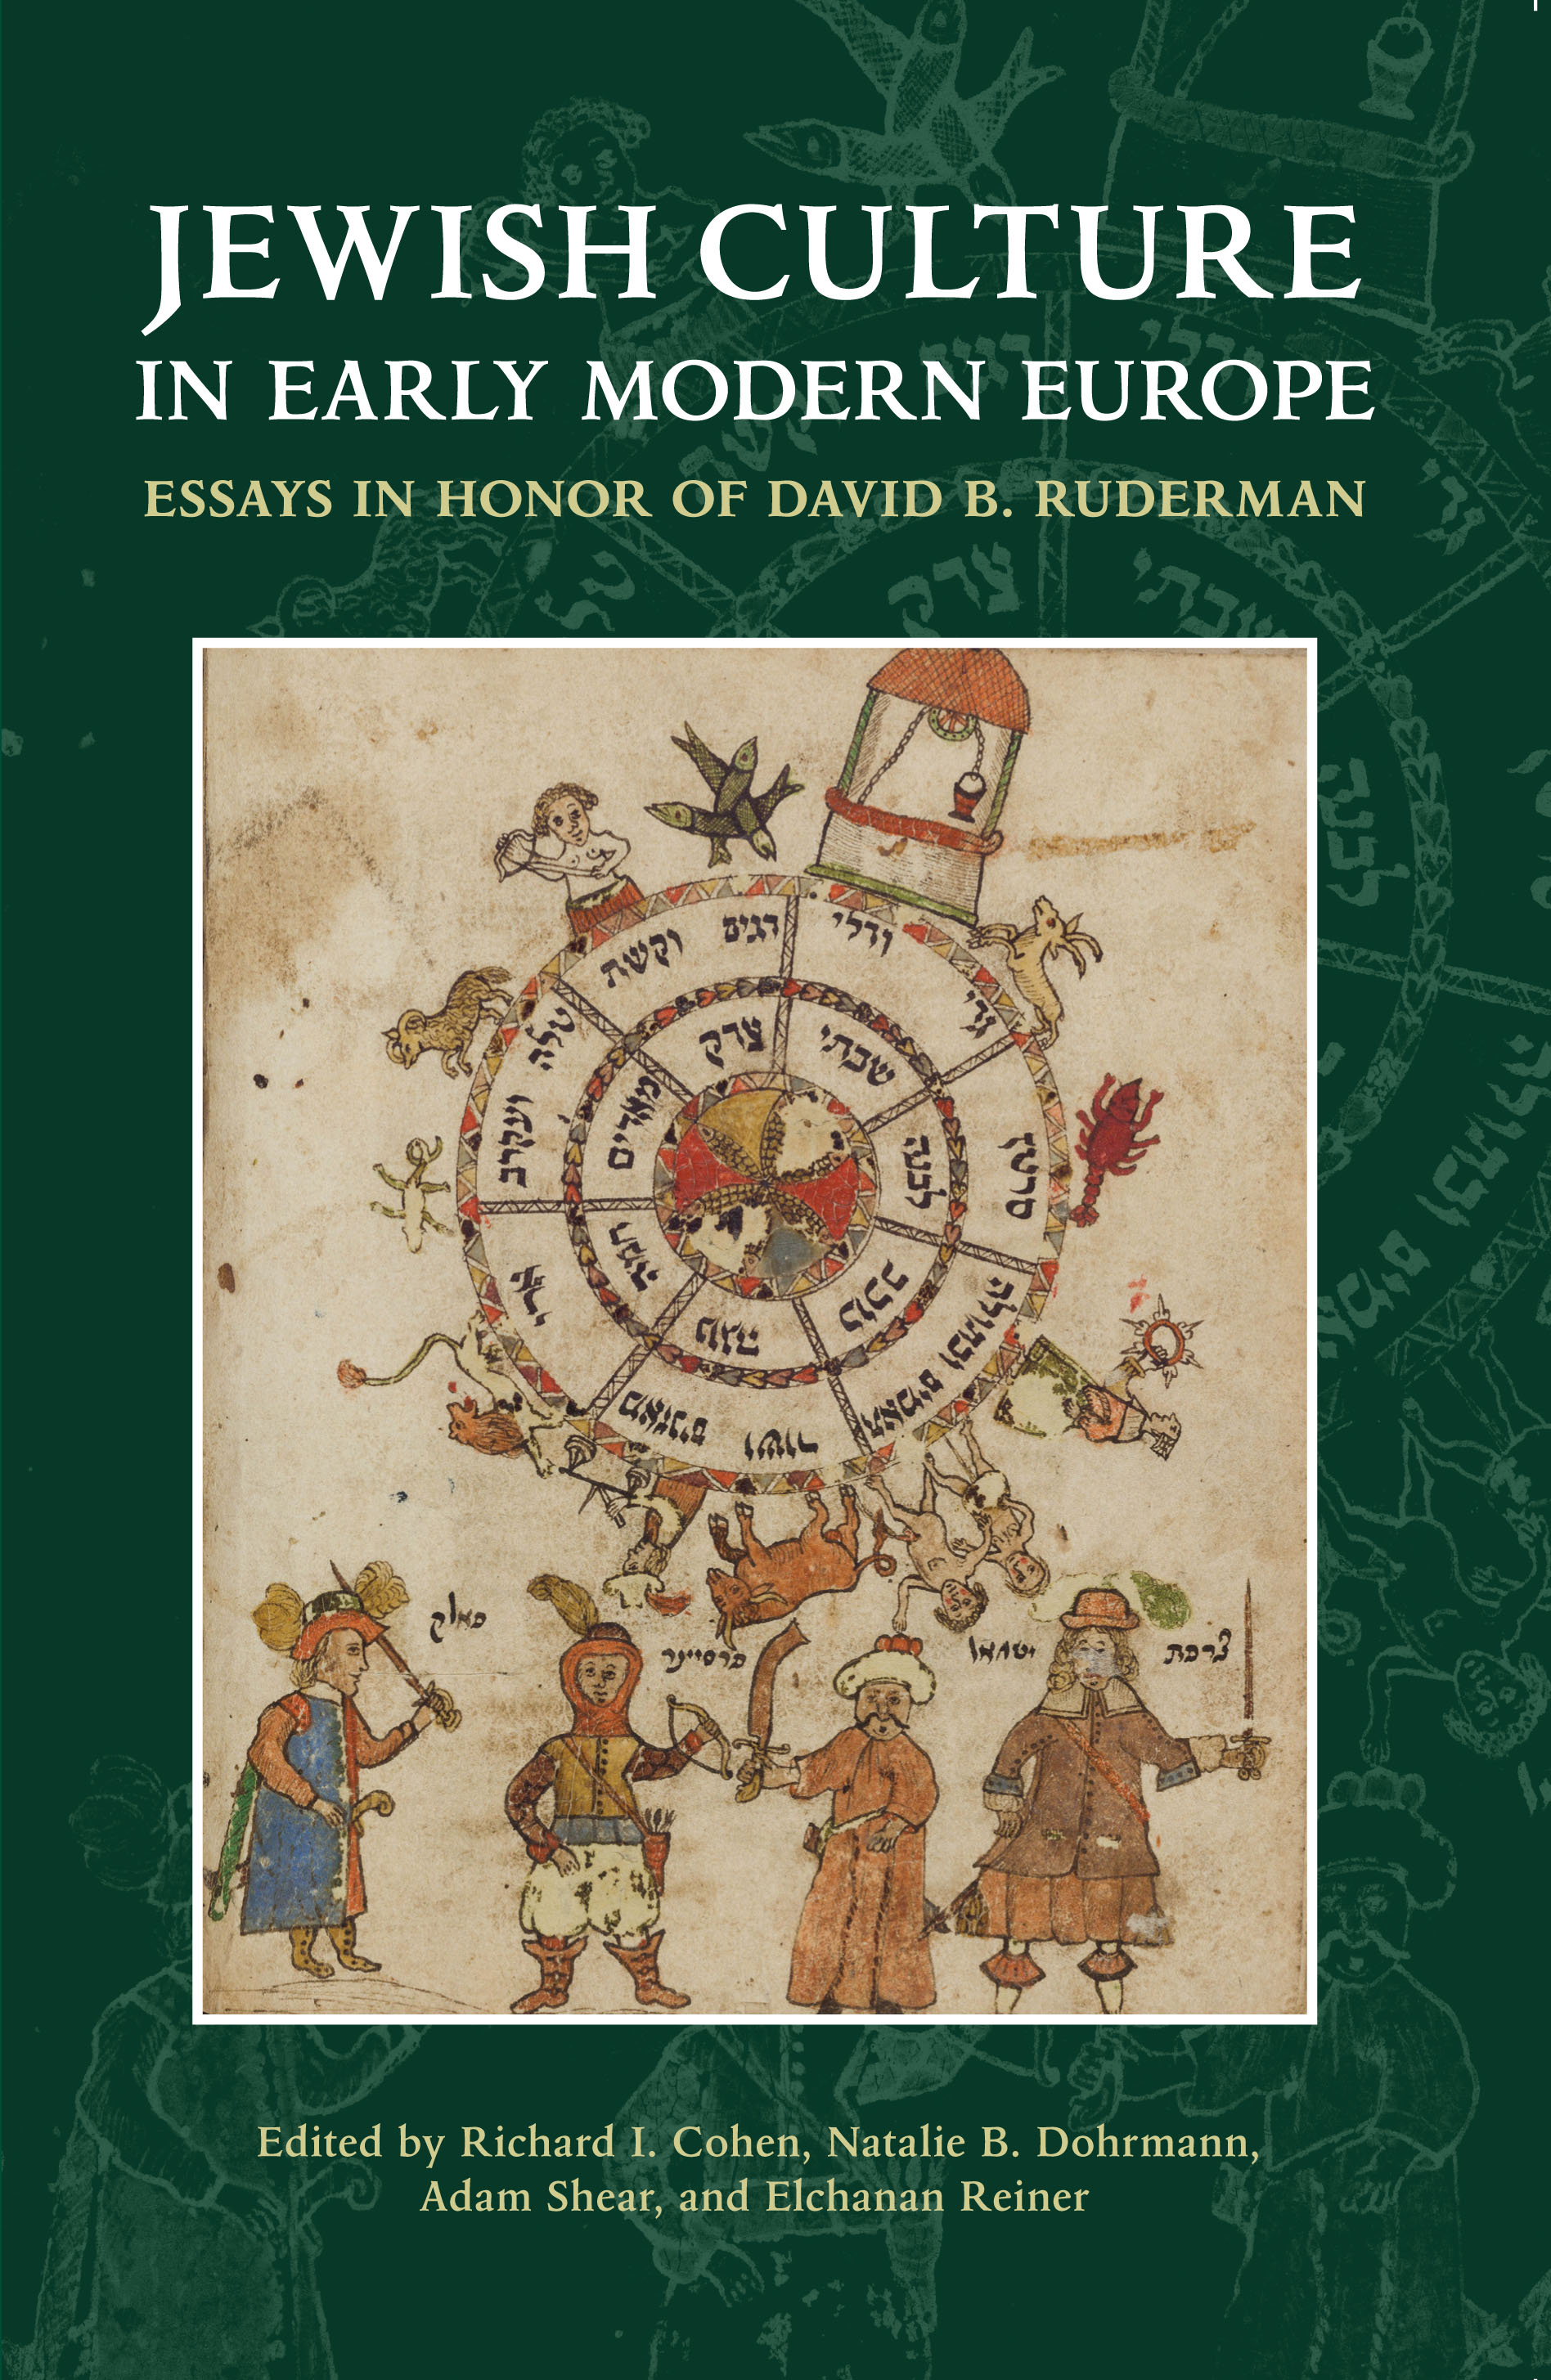 jewish culture in early modern europe essays in honor of david b jewish culture in early modern europe essays in honor of david b ruderman